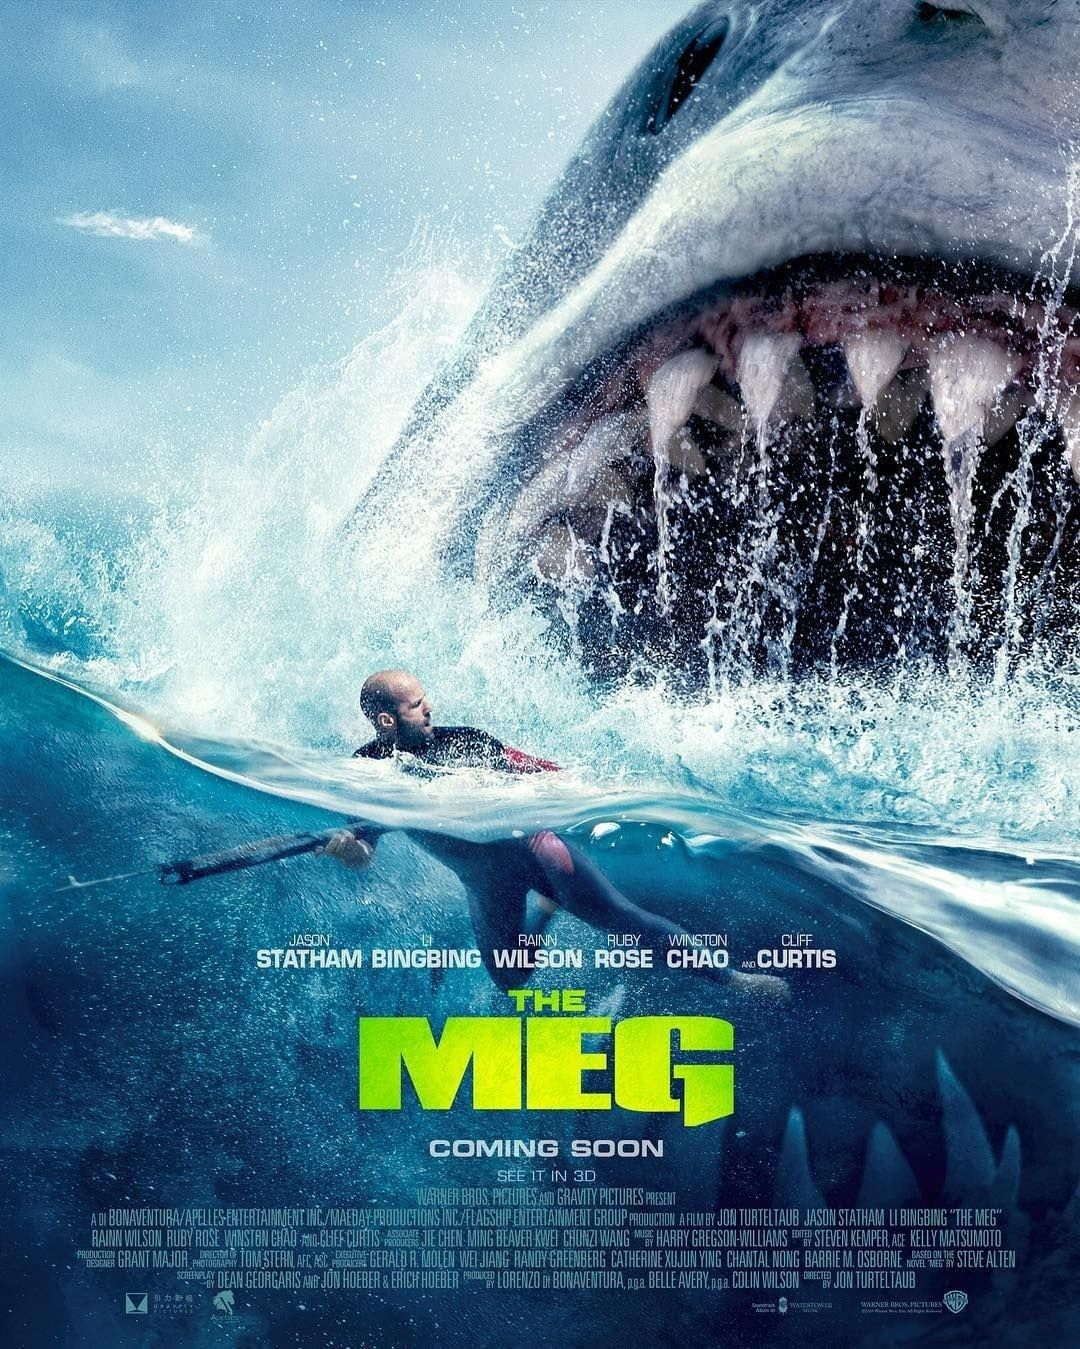 Film Review: The Meg starring Jason Statham | Shark film, Meg movie,  Megalodon